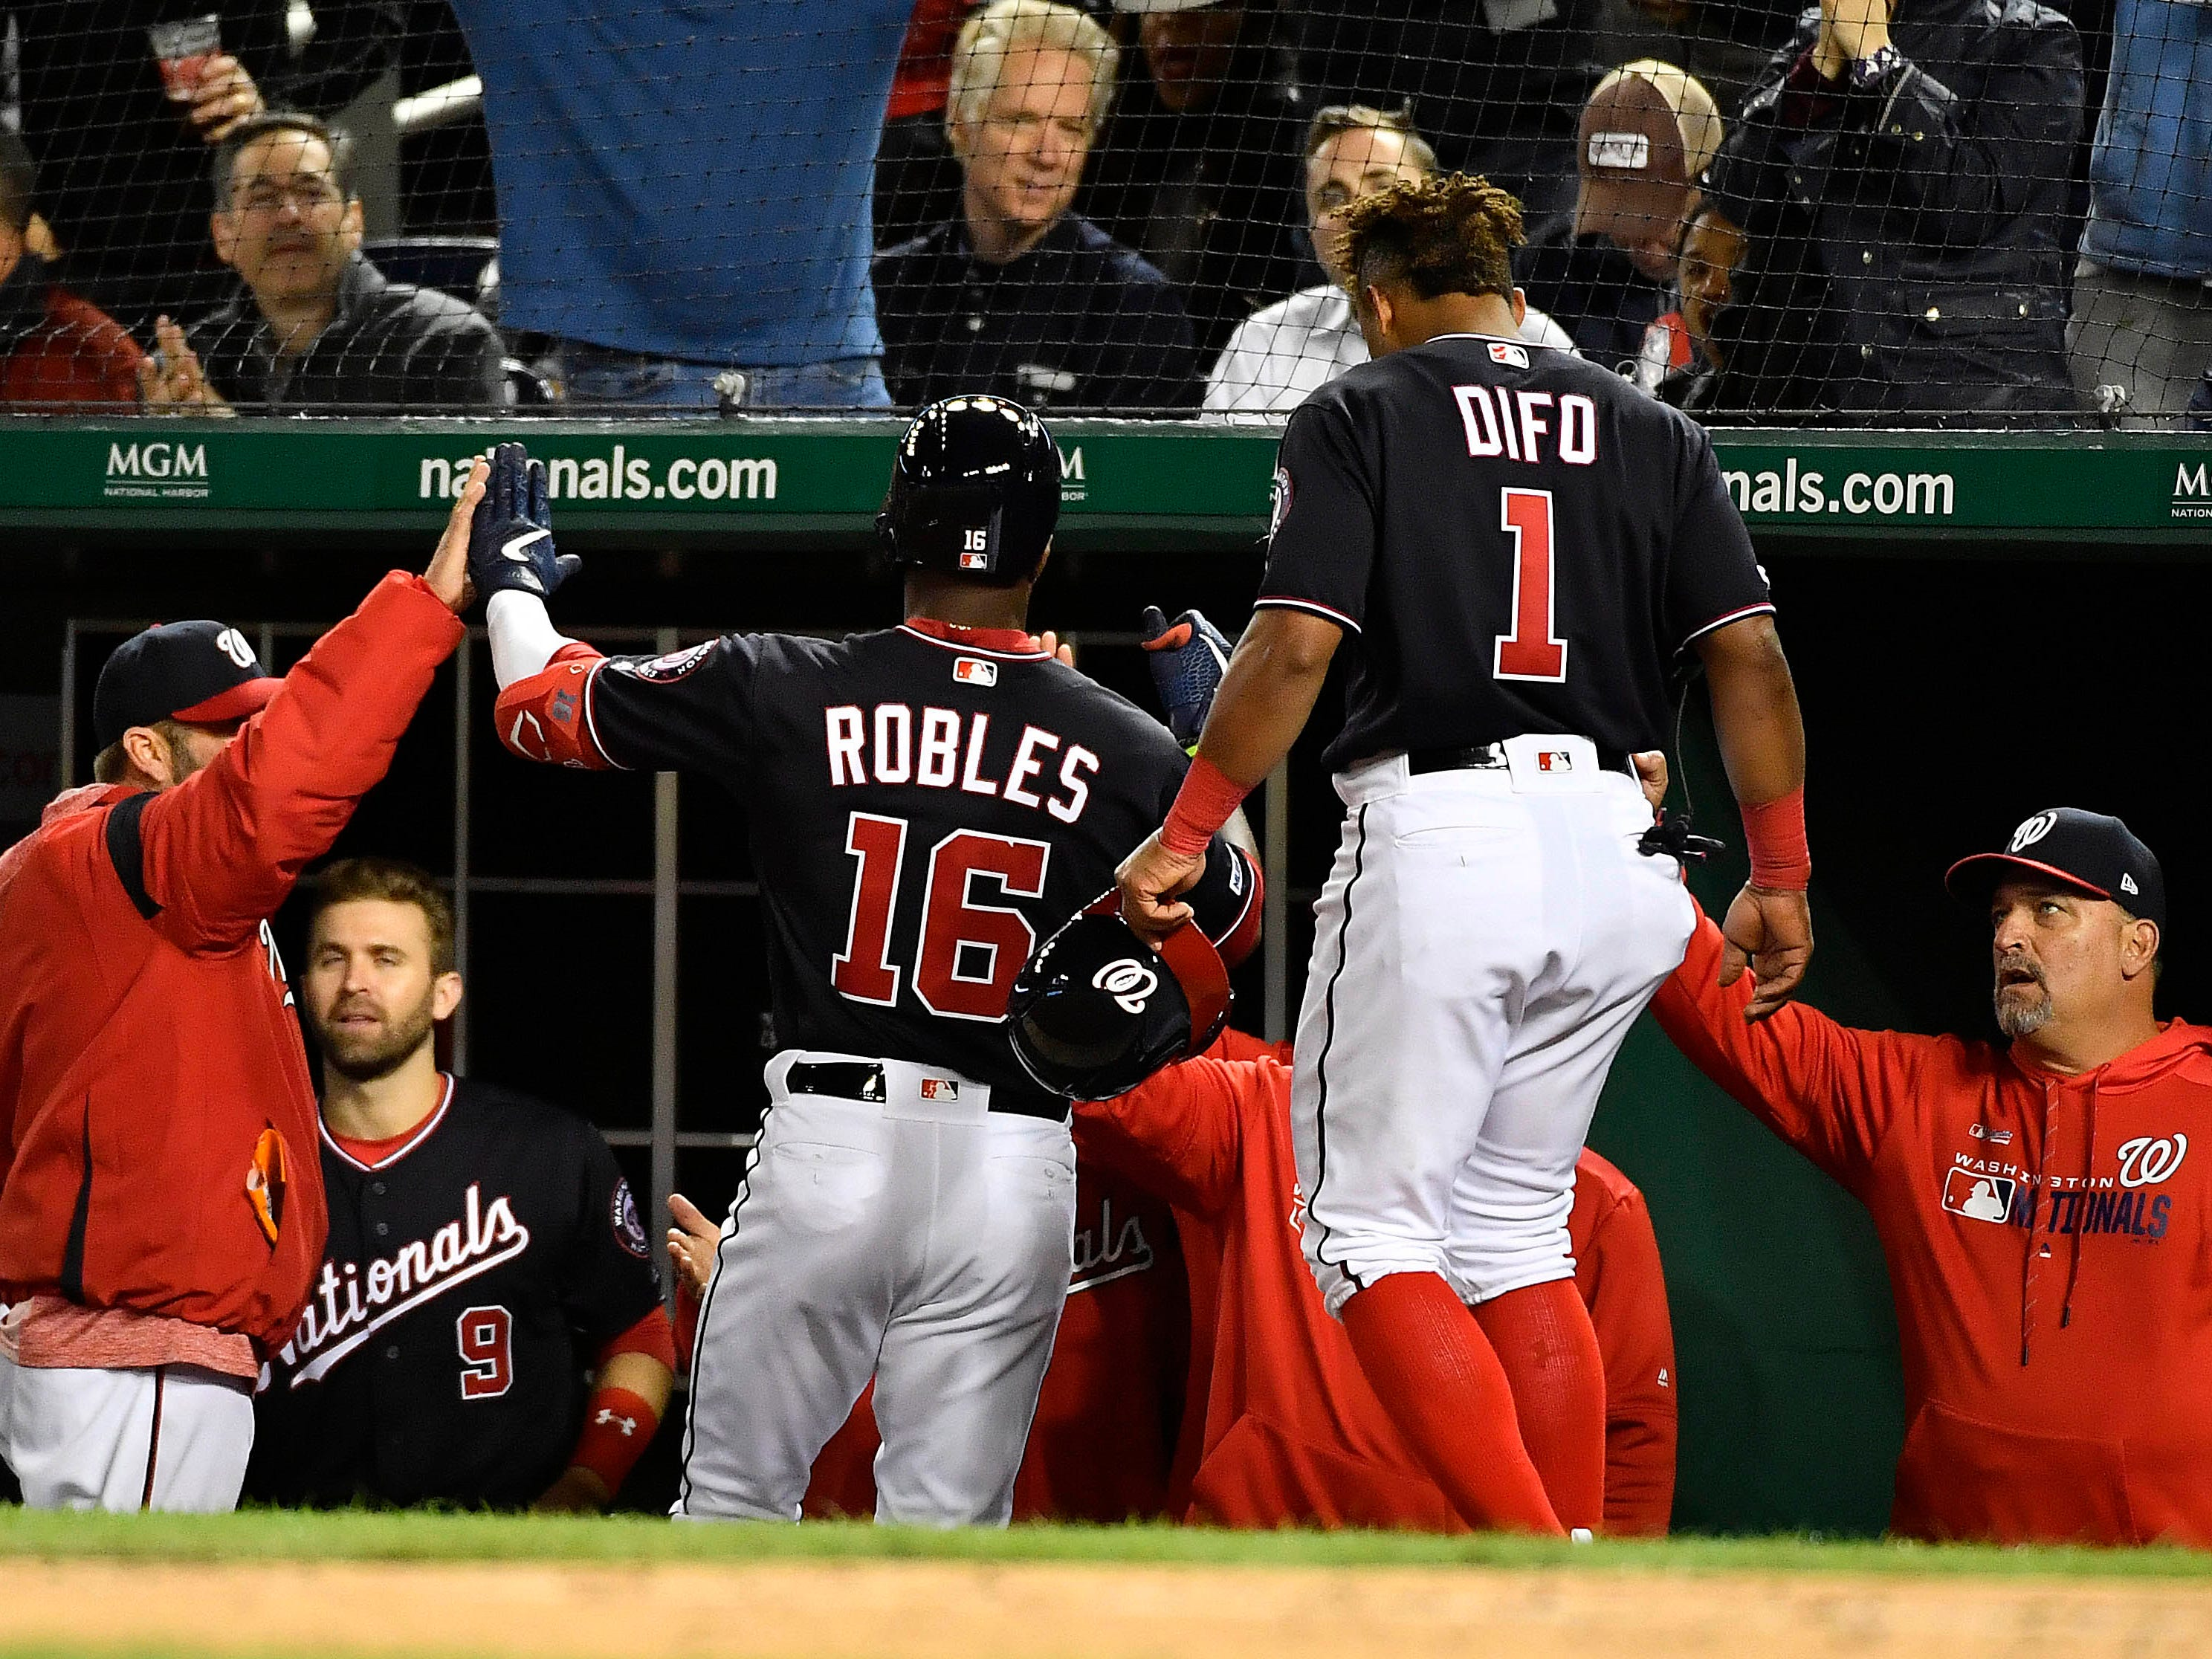 May 14, 2019; Washington, DC, USA; Washington Nationals center fielder Victor Robles (16) is congratulated by teammates after hitting a two run home run against the New York Mets during the sixth inning at Nationals Park.